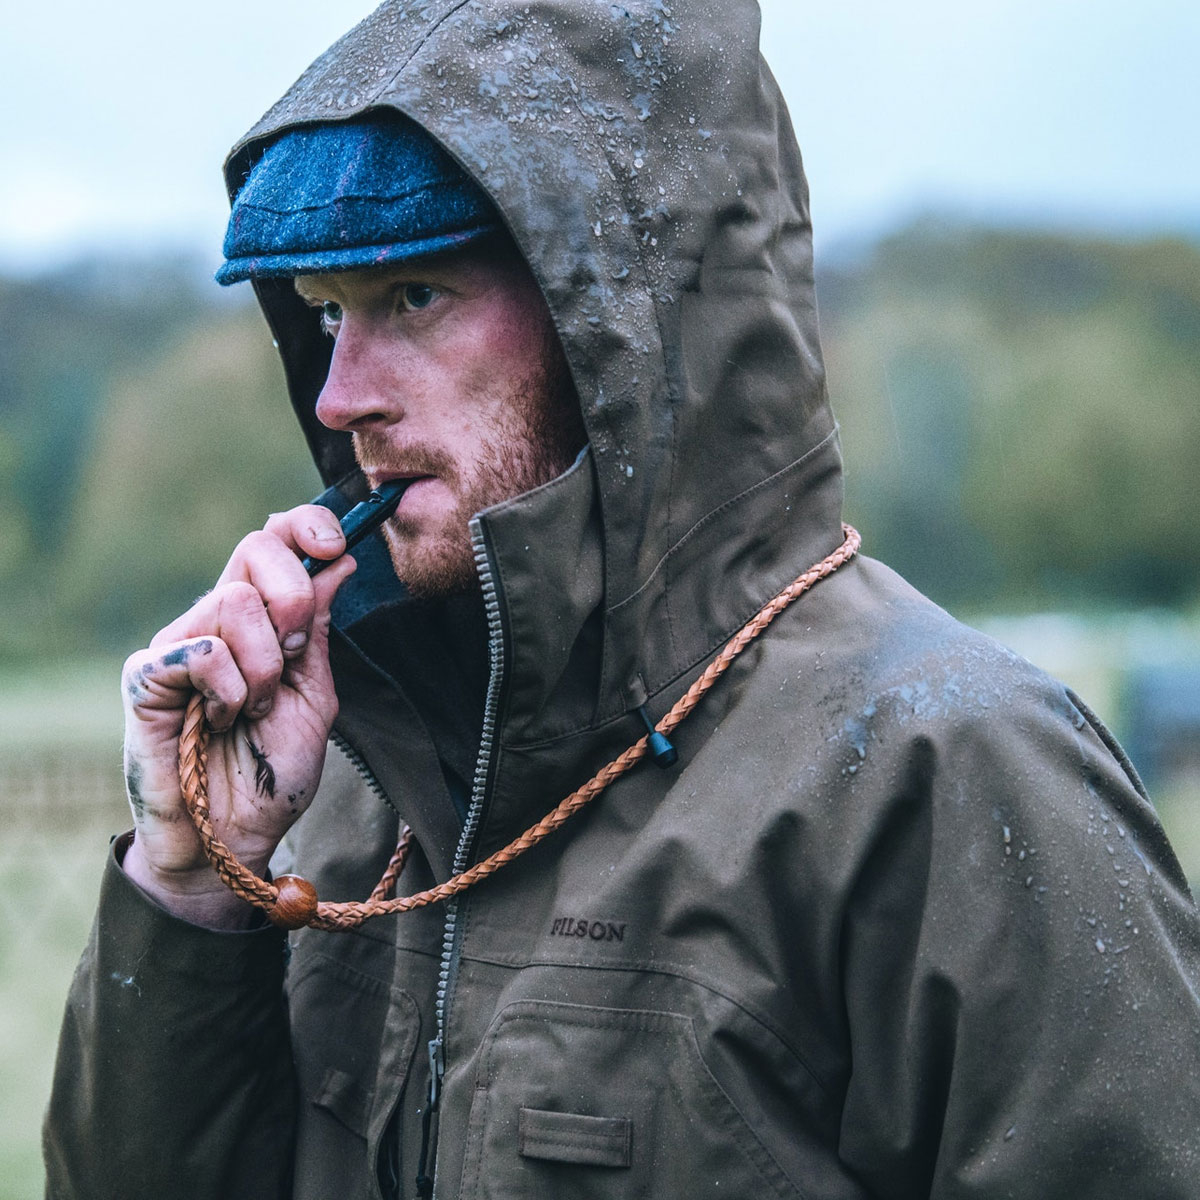 Filson 3-Layer Field Jacket Brown,fully seam-taped three-layer waterproof, breathable jacket, the best of the best